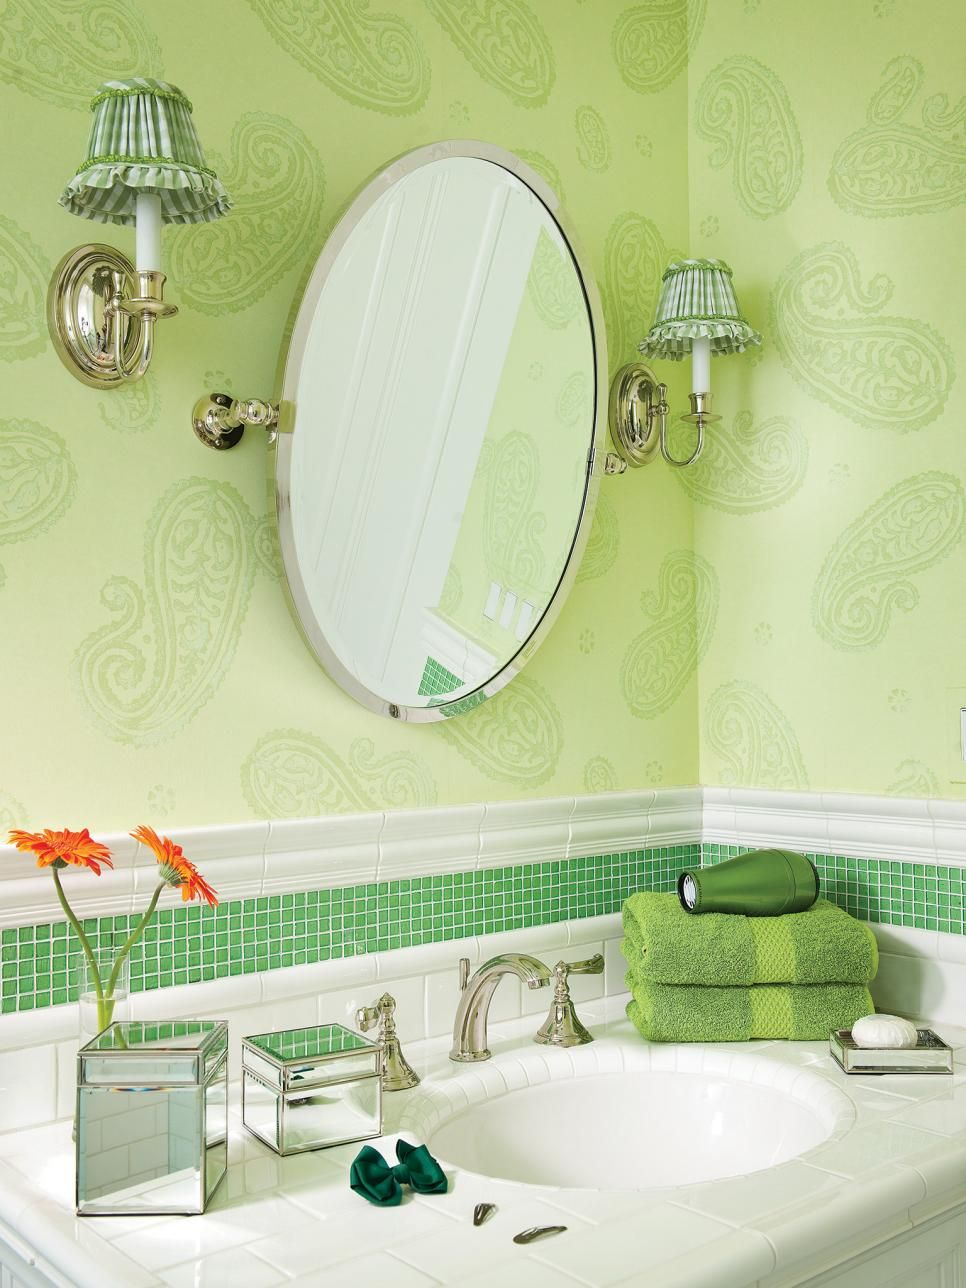 Search Viewer   Things I Like   Pinterest   Paisley wallpaper, Small ...